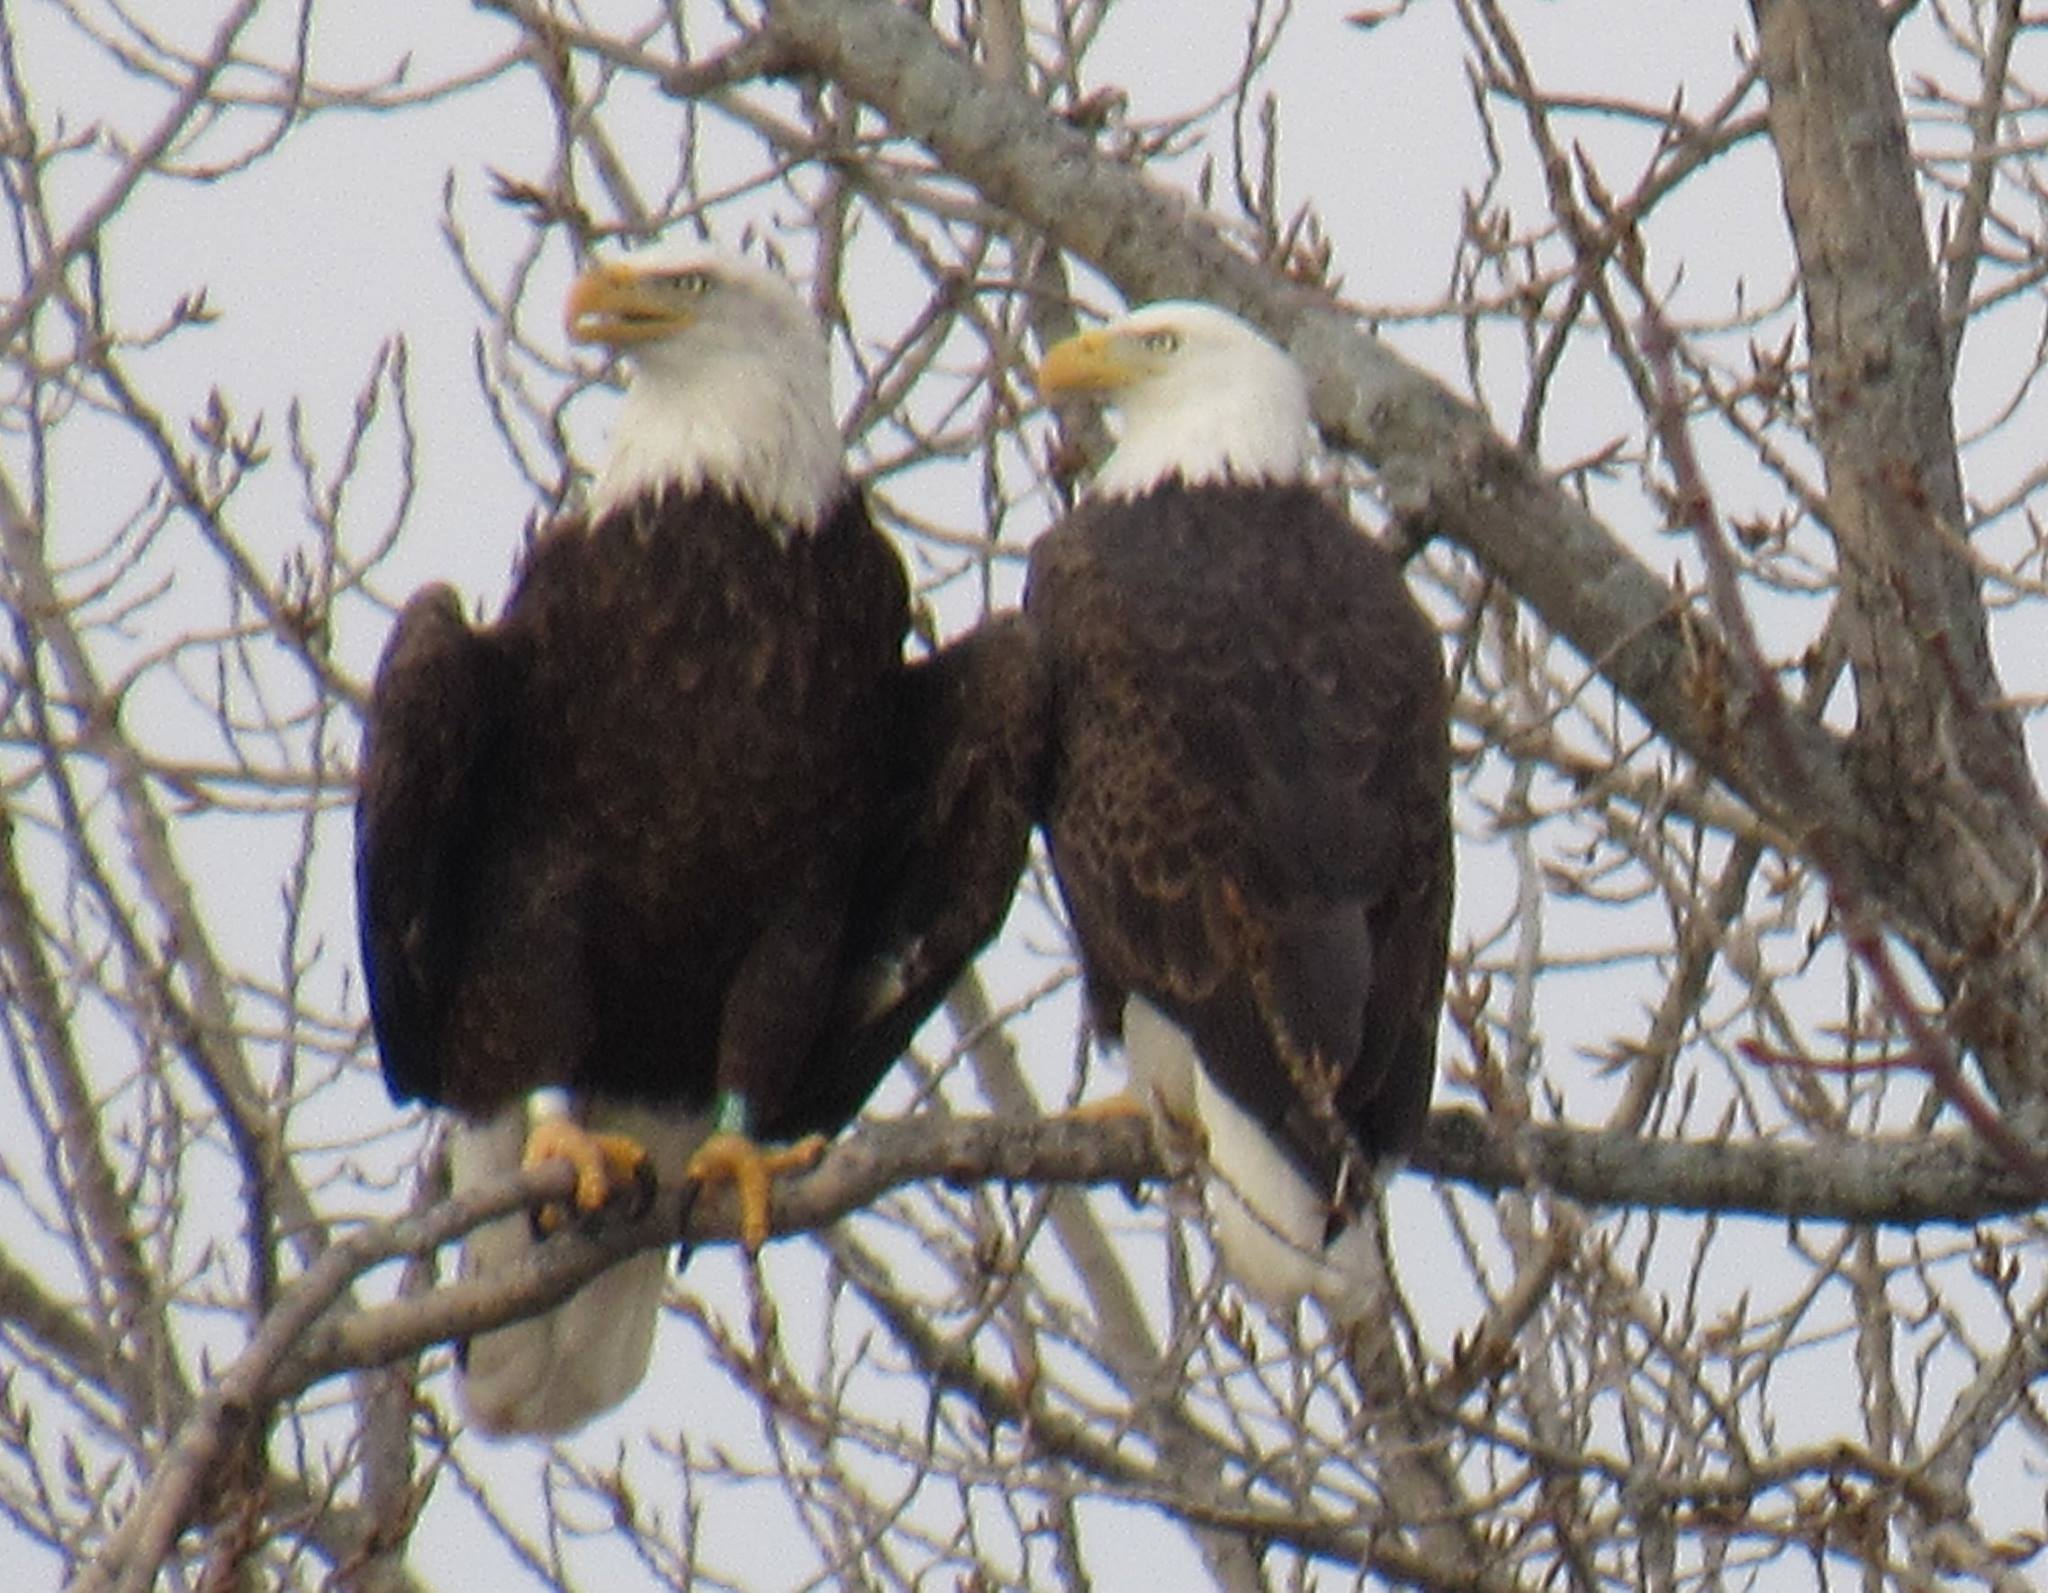 bald_eagle_pair_1454432989.jpg